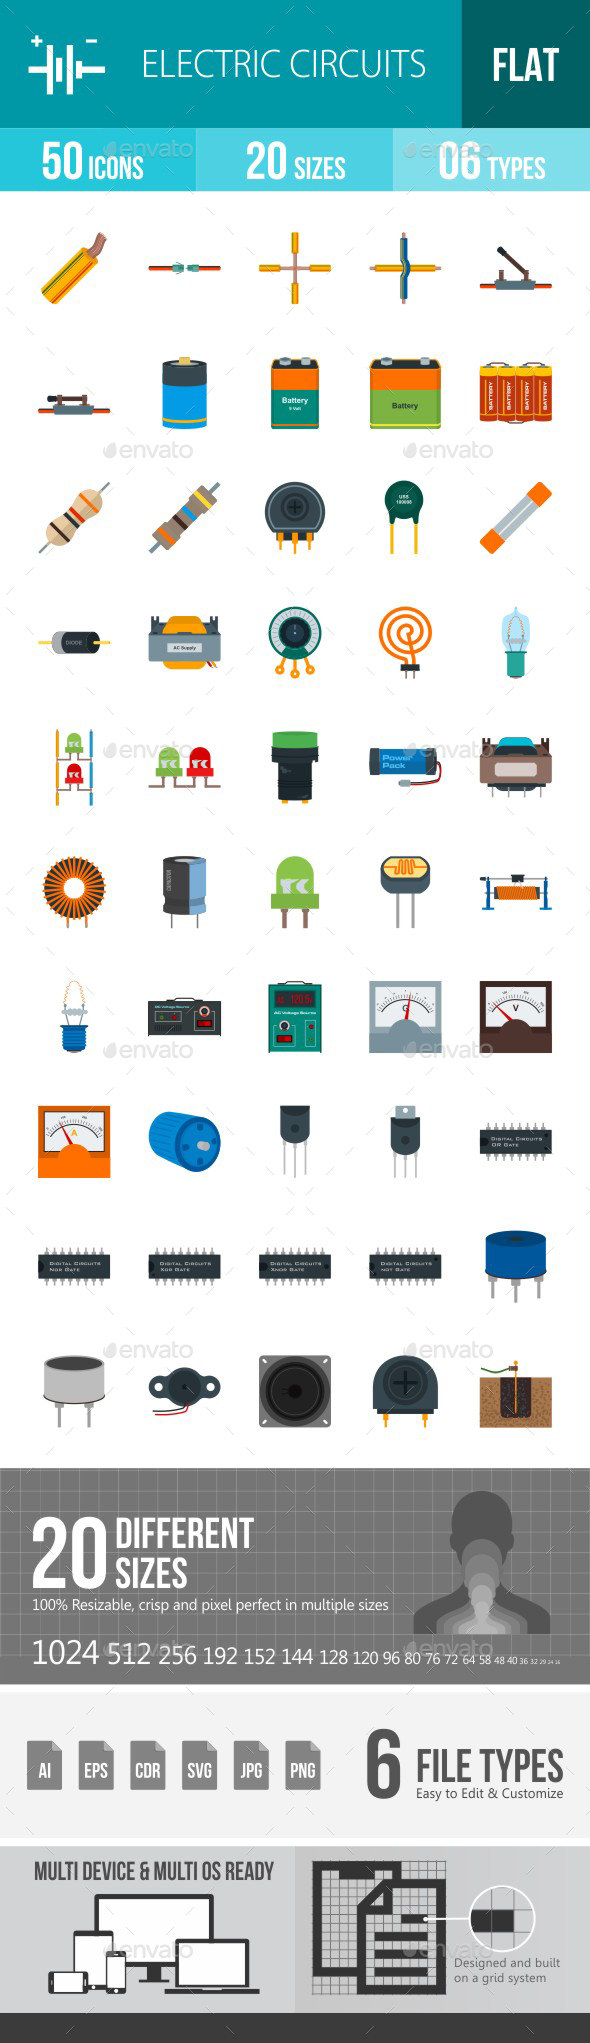 Electric Circuits Flat Multicolor Icons - Icons